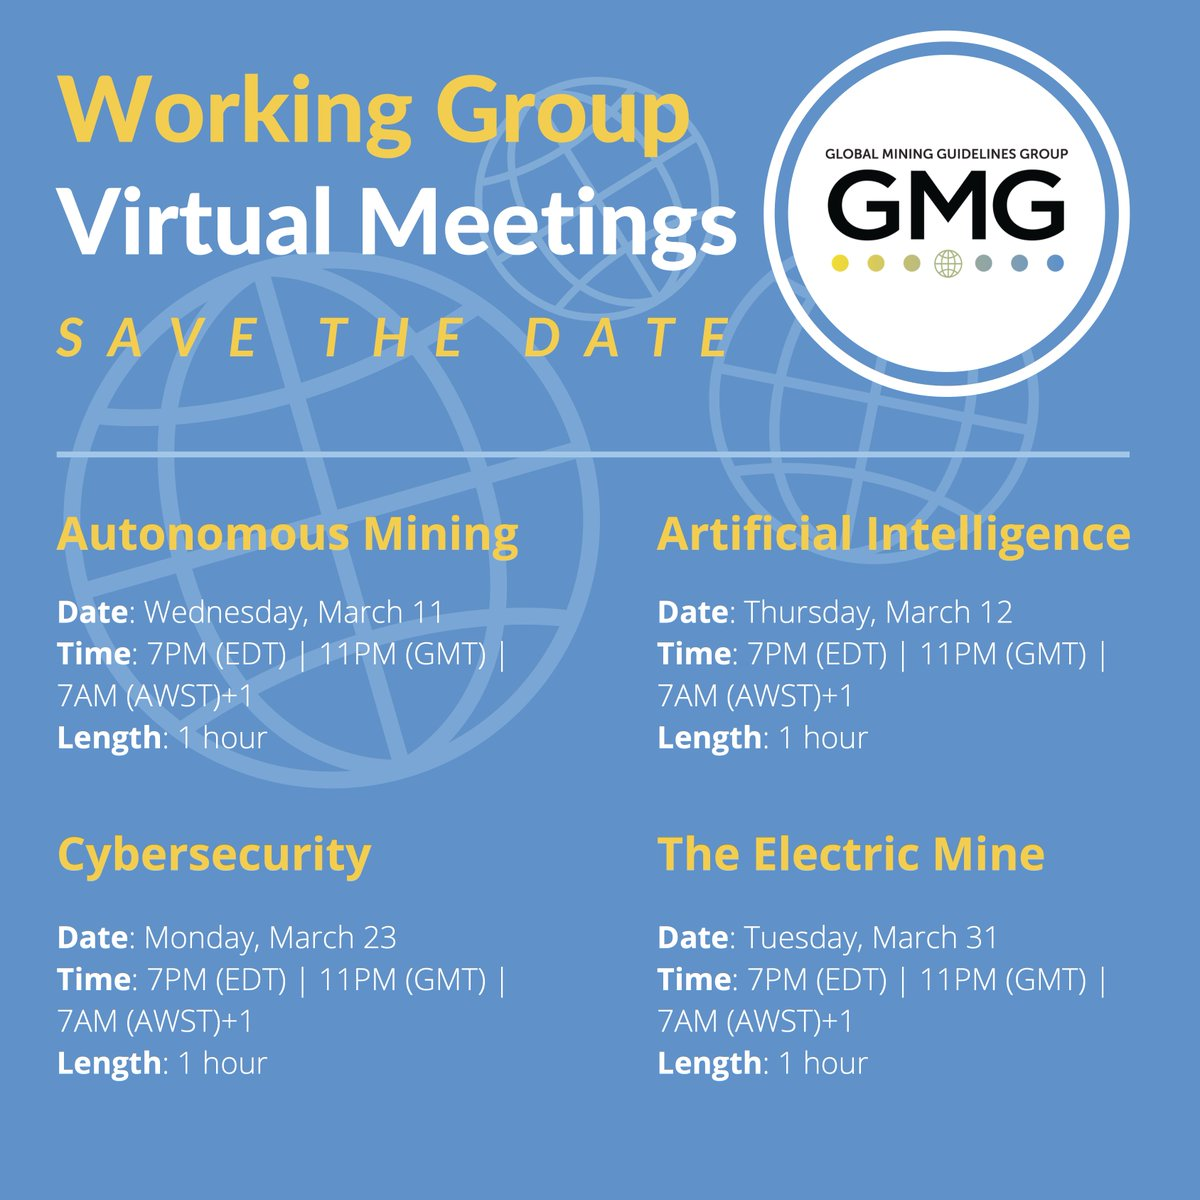 Collaborate and innovate with GMG in the fast track implementation of technologies in our industry! We are kicking off a series of virtual meetings in March on #Autonomous  #Mining , #ArtificialIntelligence , #Cybersecurity  and #TheElectricMine ! Learn more:  http://ow.ly/OrBA50yuvjU